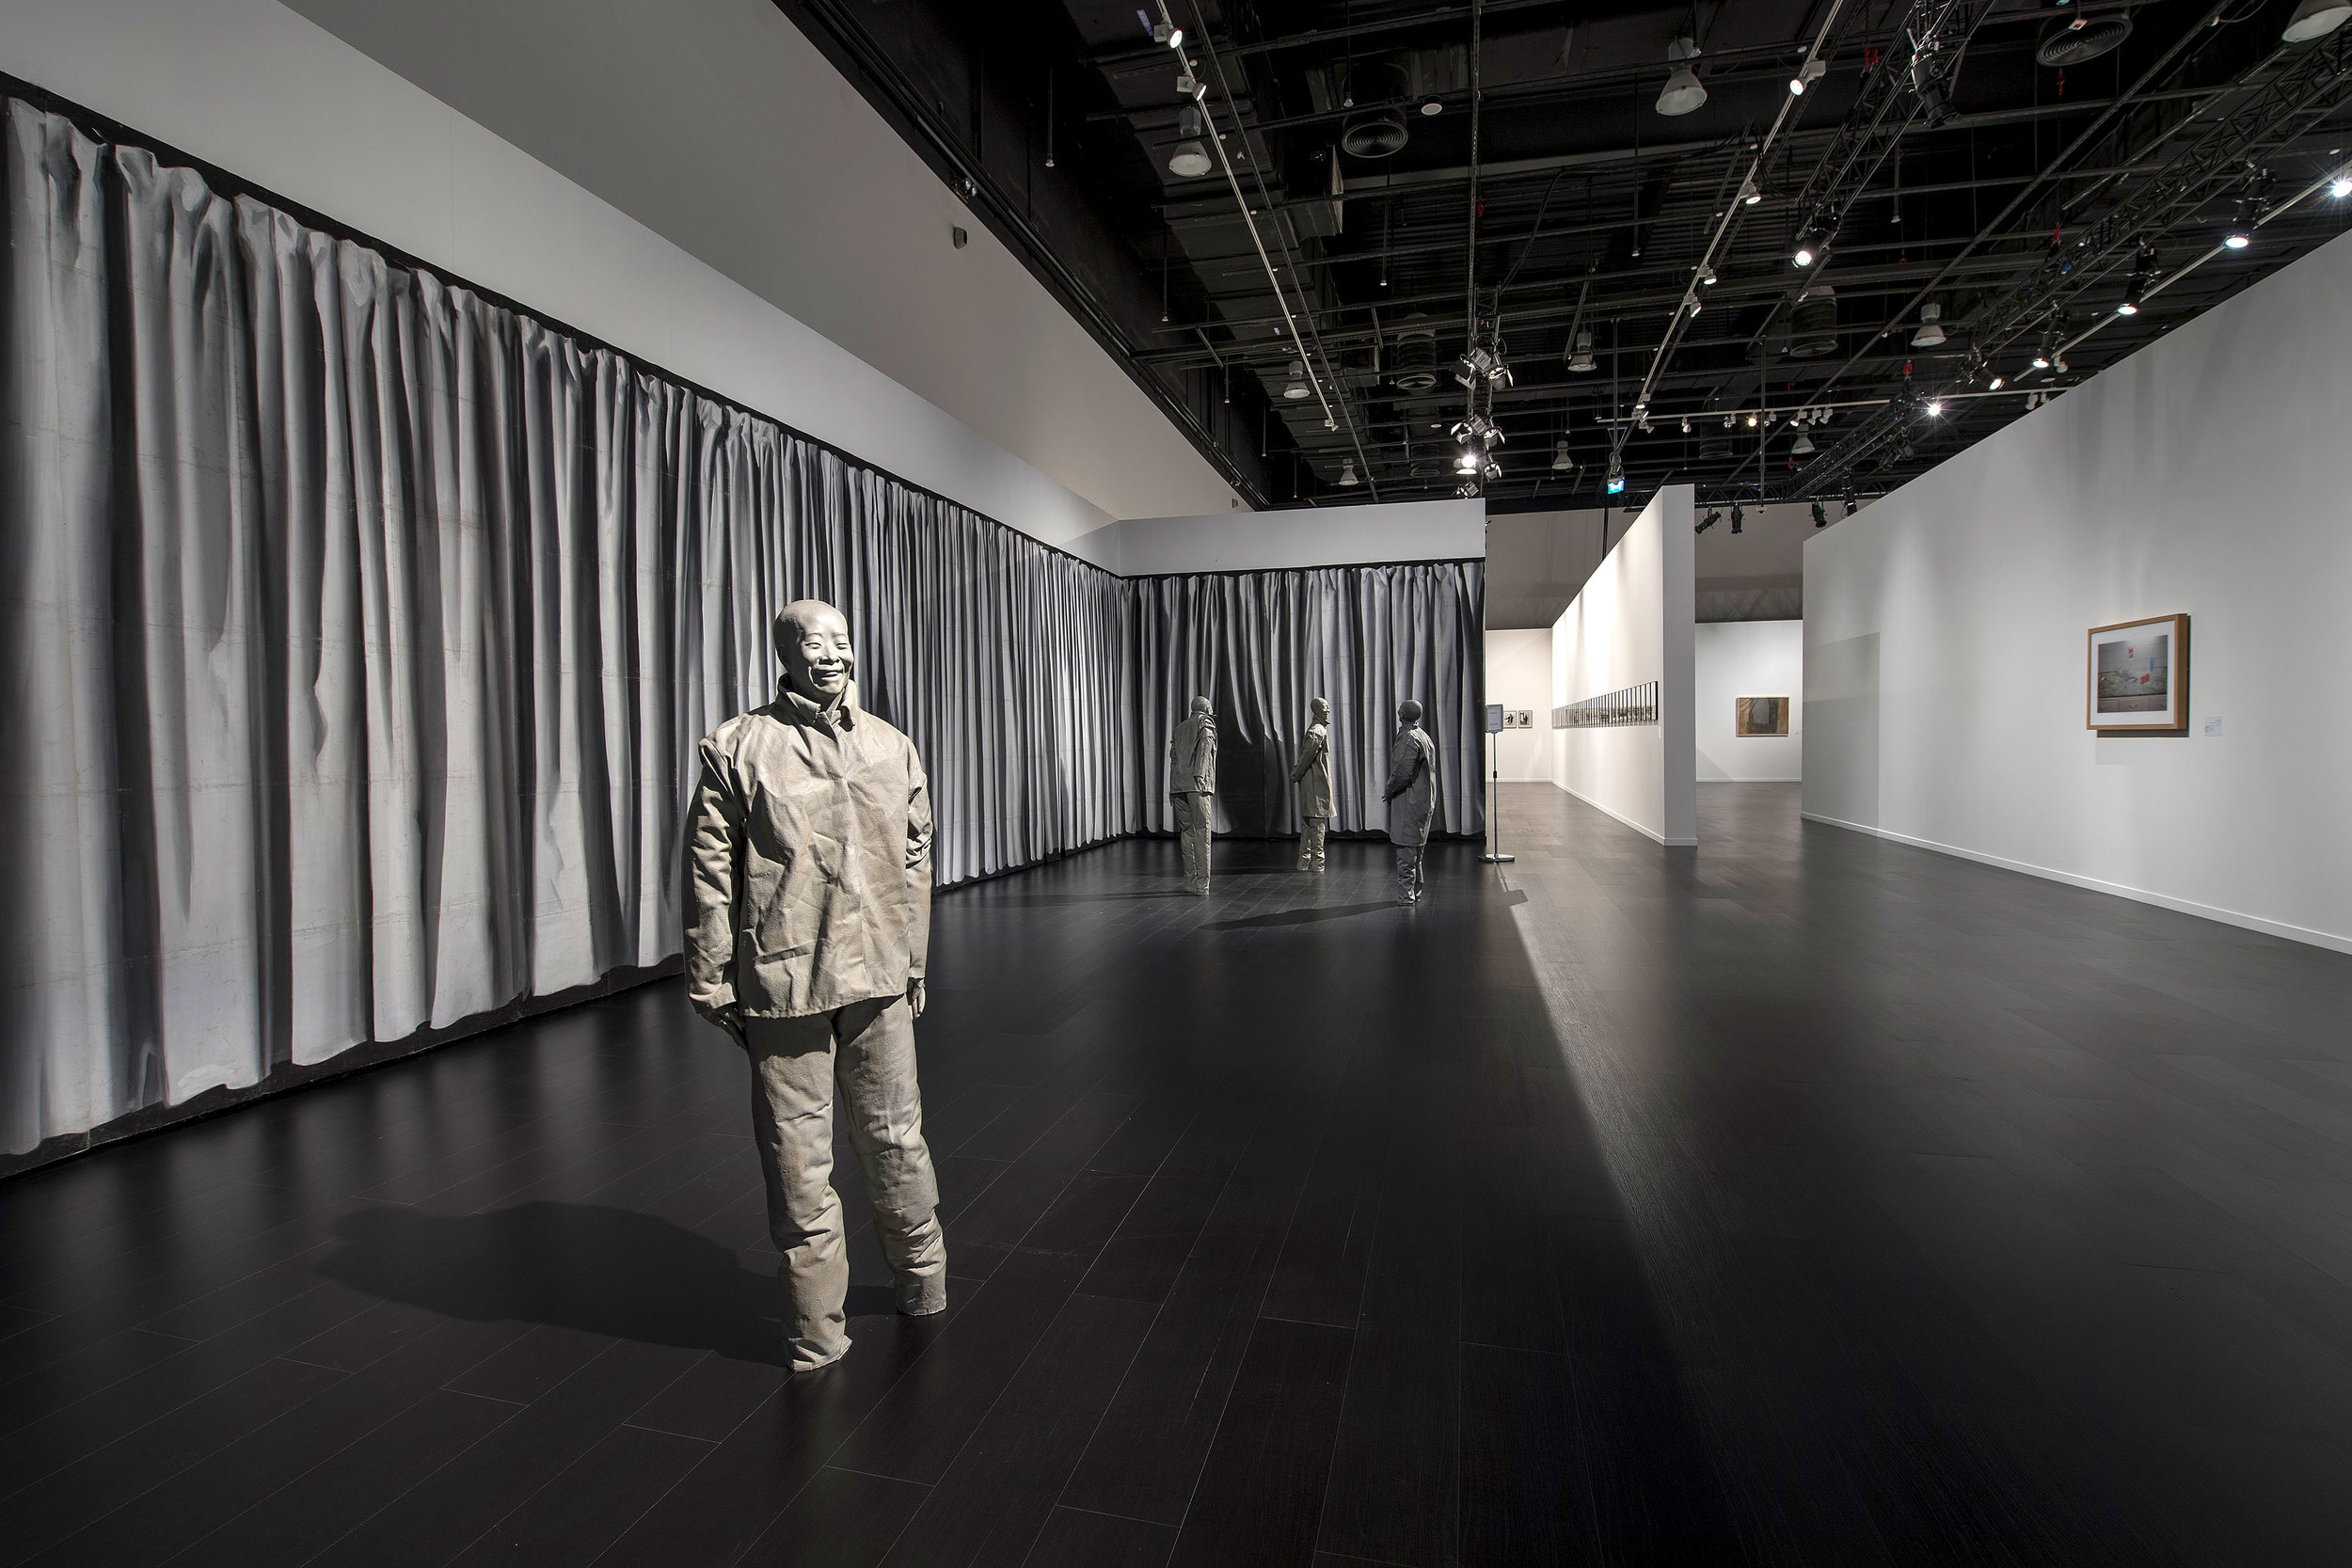 Juan Muñoz's  The Nature of Visual Illusion (1994–1997) installed in Manarat Al Saadiyat, February 2018 as part of  From Barcelona to Abu Dhabi - Works from MACBA in dialogue with the Emirates. © Courtesy of Abu Dhabi Festival